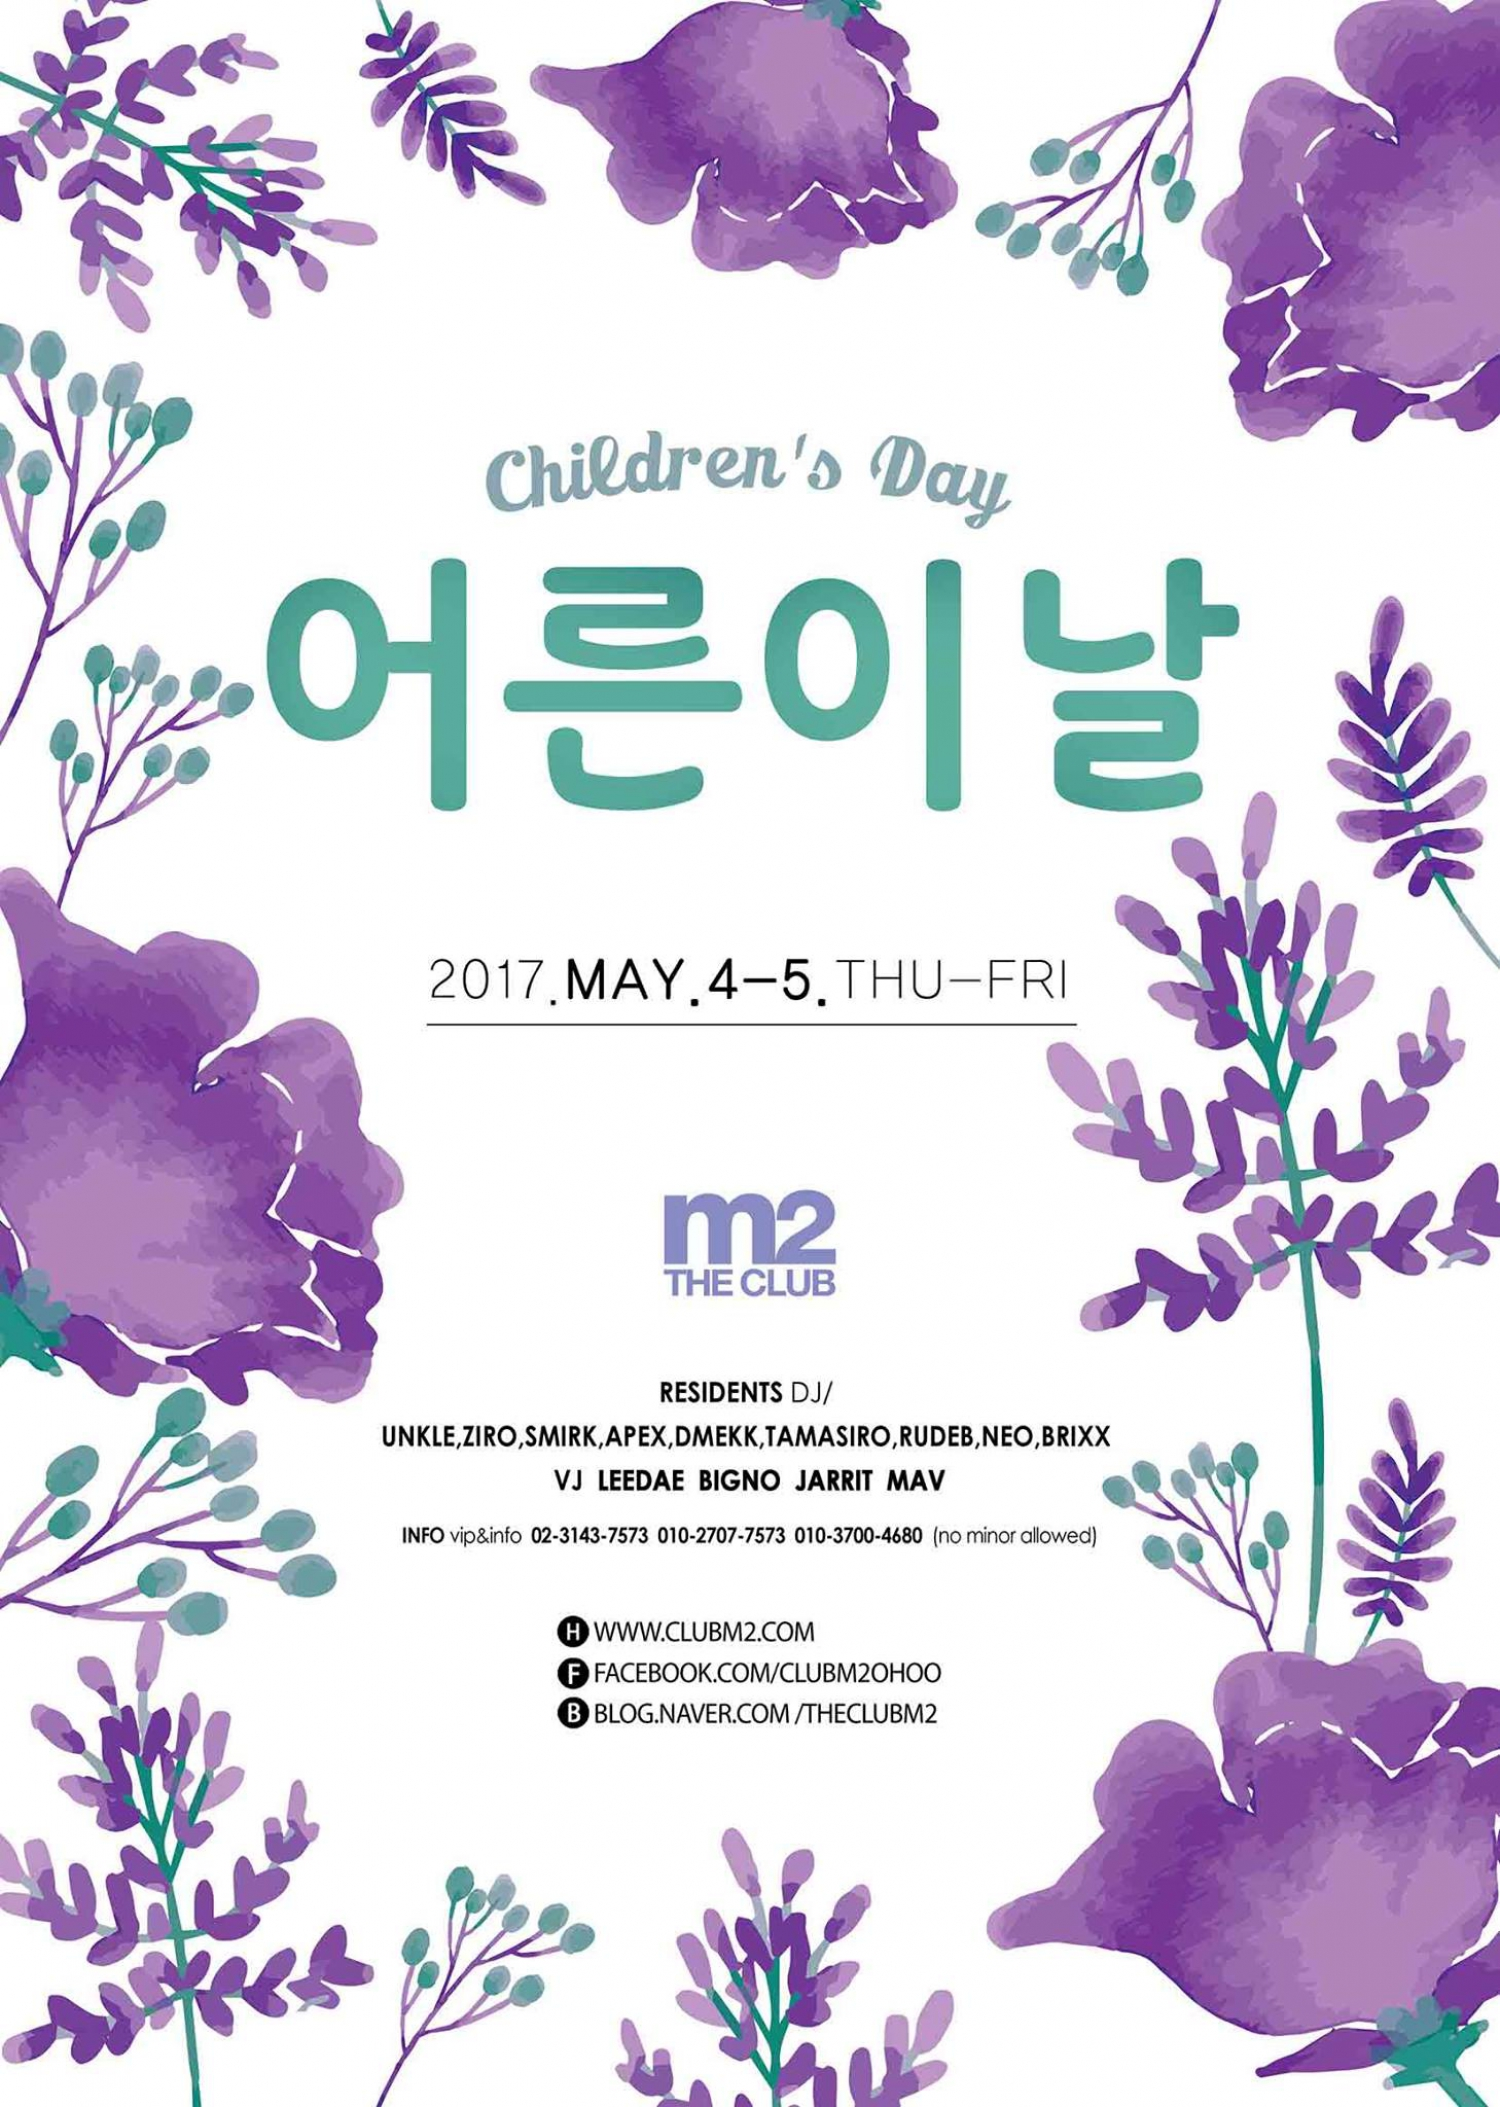 Children's Day Party at Club m2